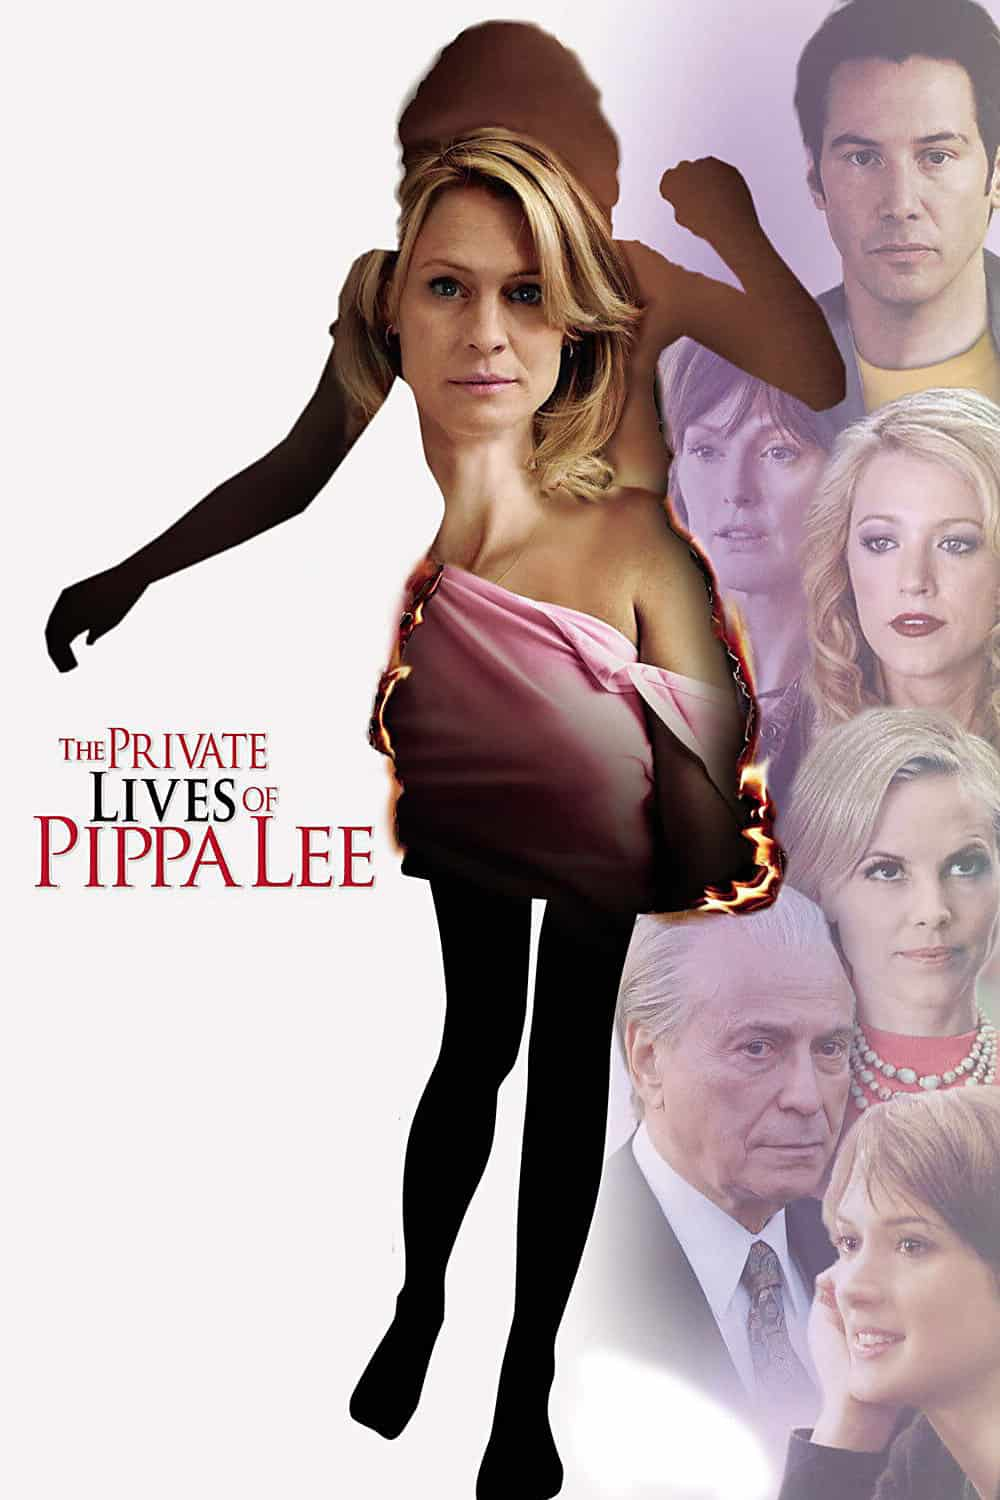 The Private Lives of Pippa Lee, 2009